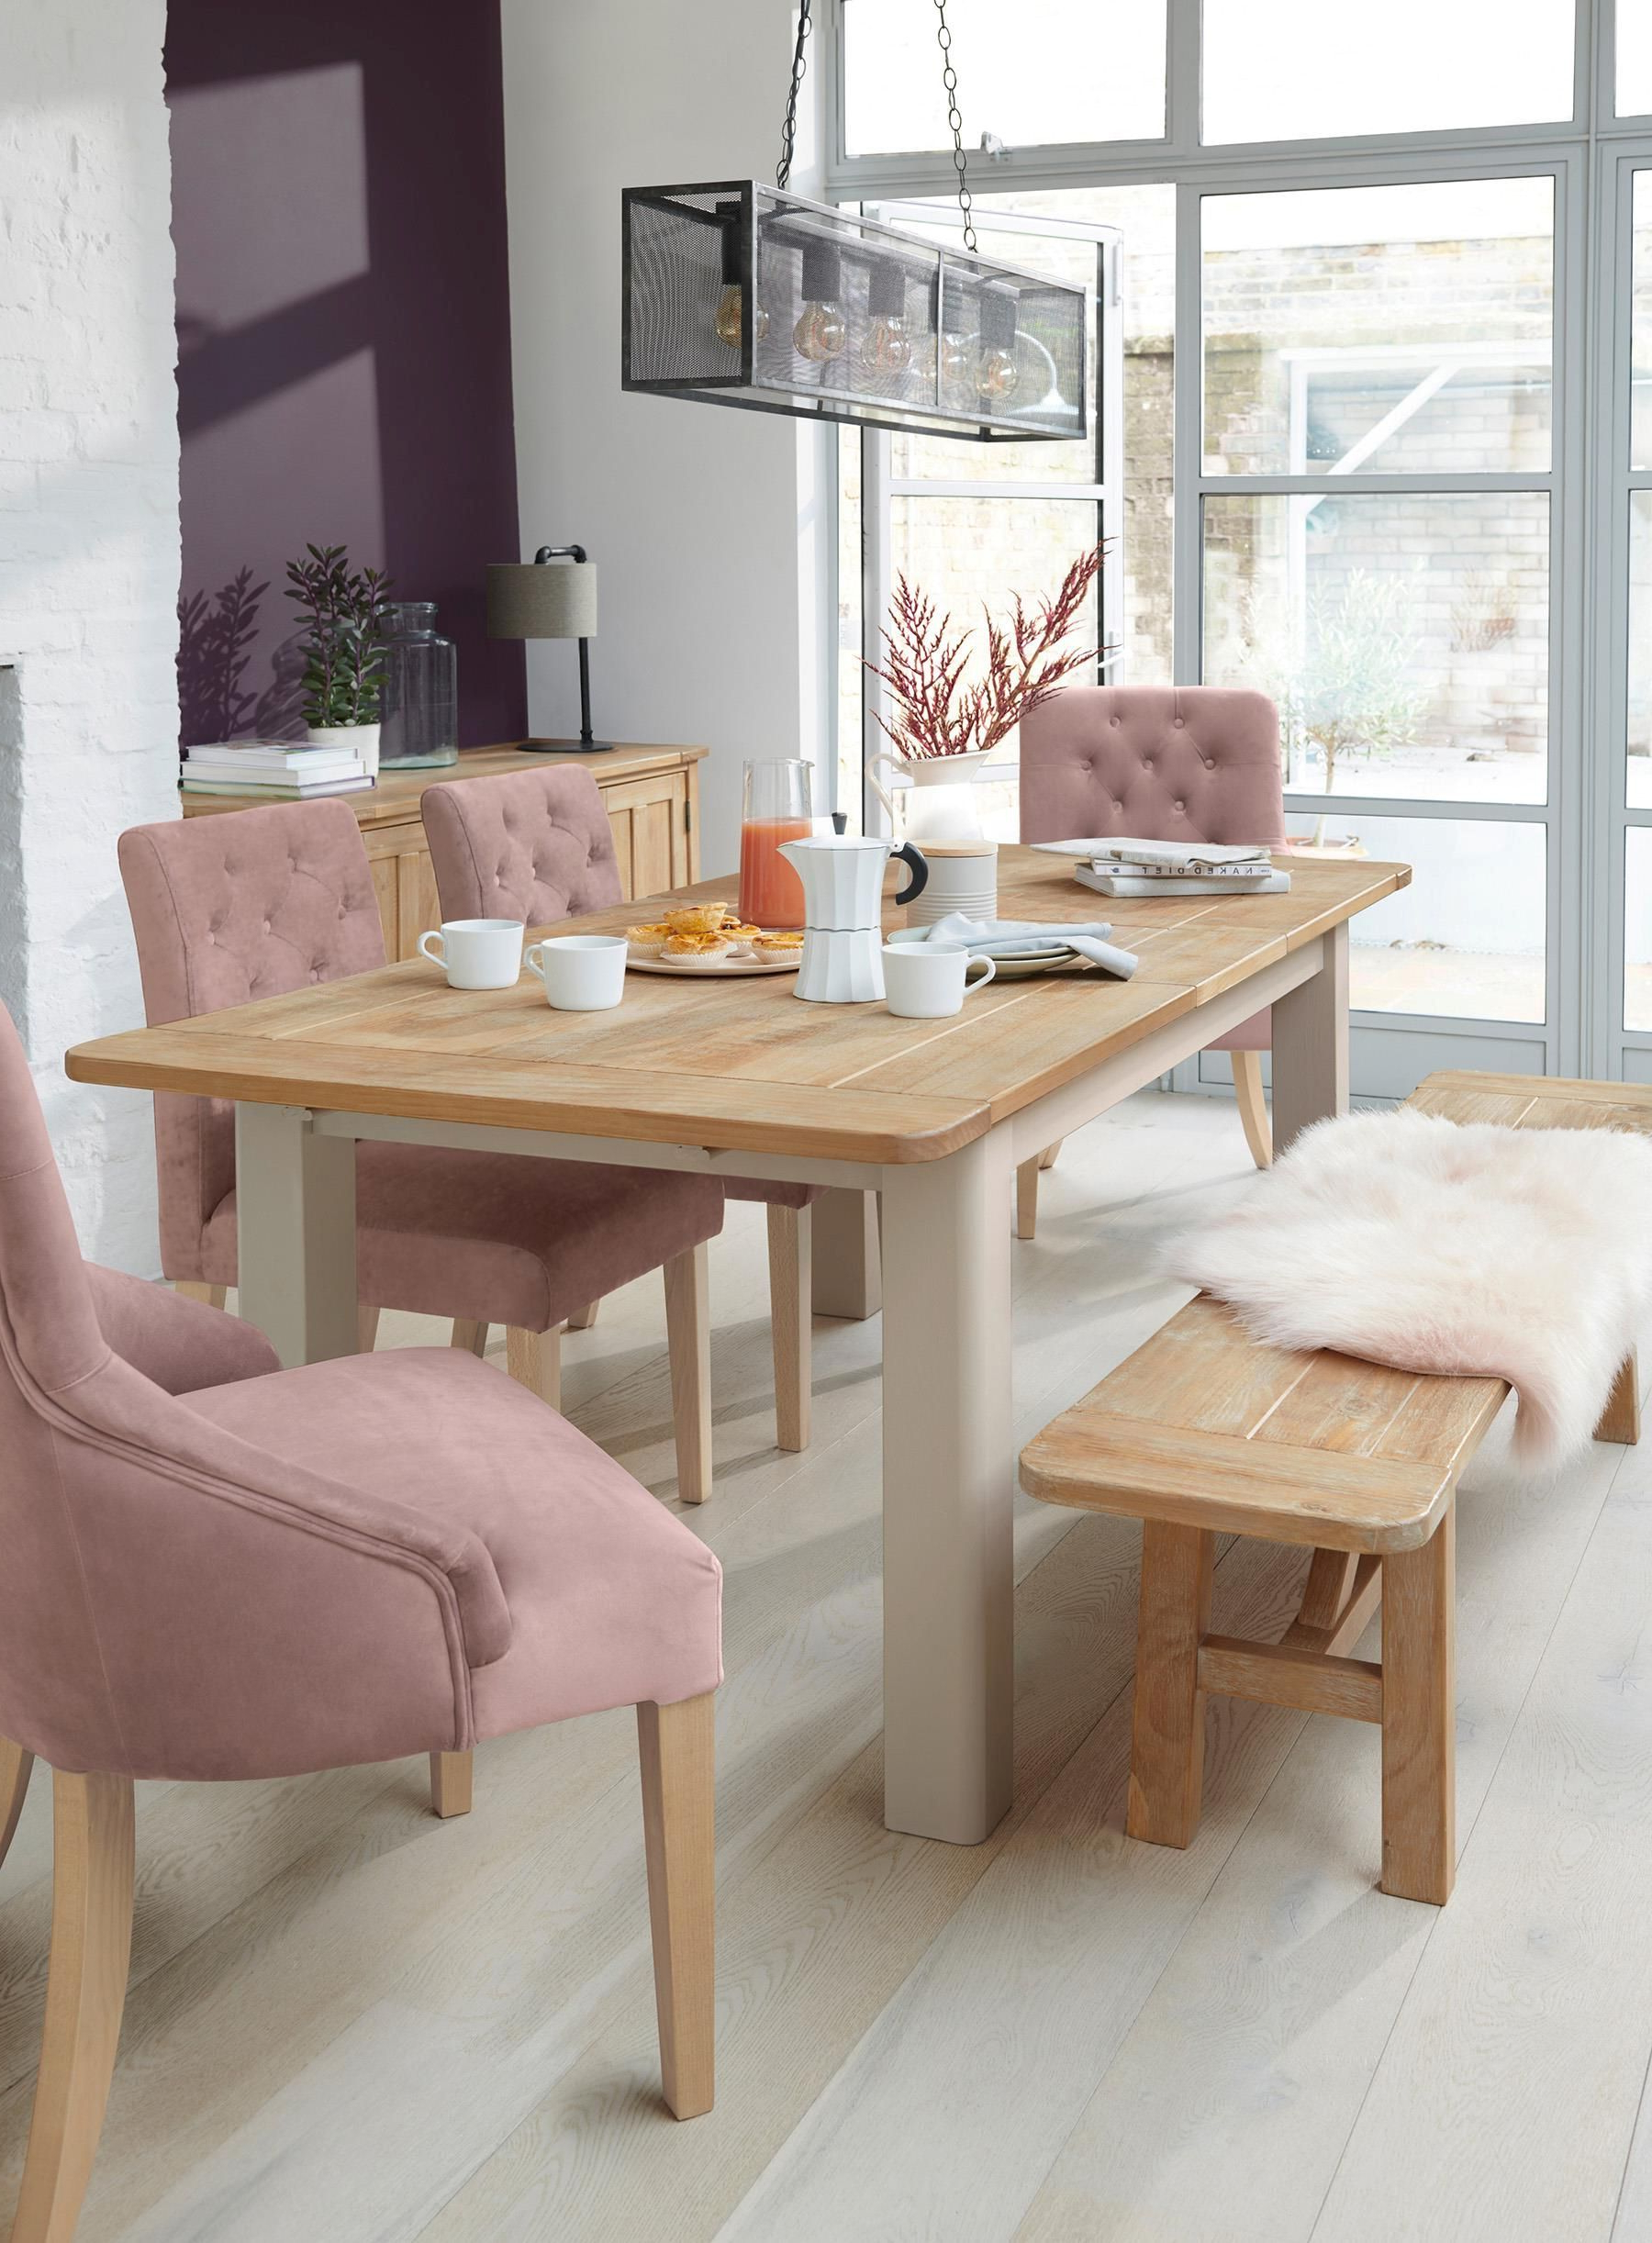 Best and Newest Buy Huxley Painted 6 To 8 Seater Extending Dining Table From with regard to Gray Wash Livingston Extending Dining Tables